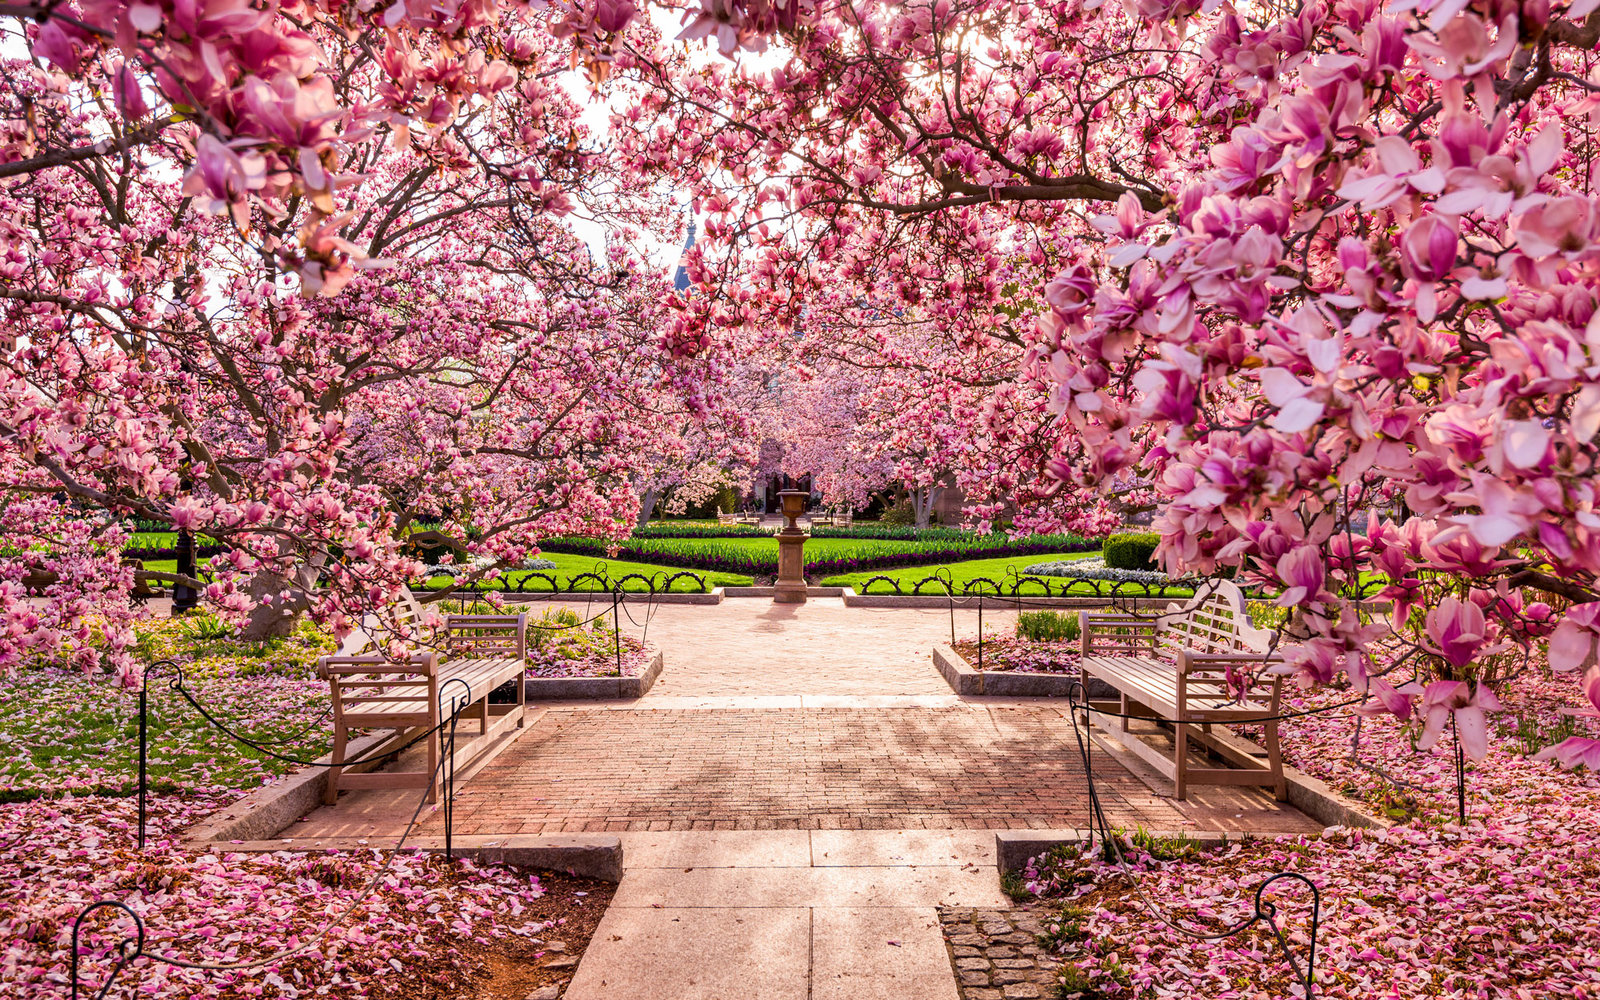 When do cherry blossoms bloom in washington d c Cherry blossom pictures